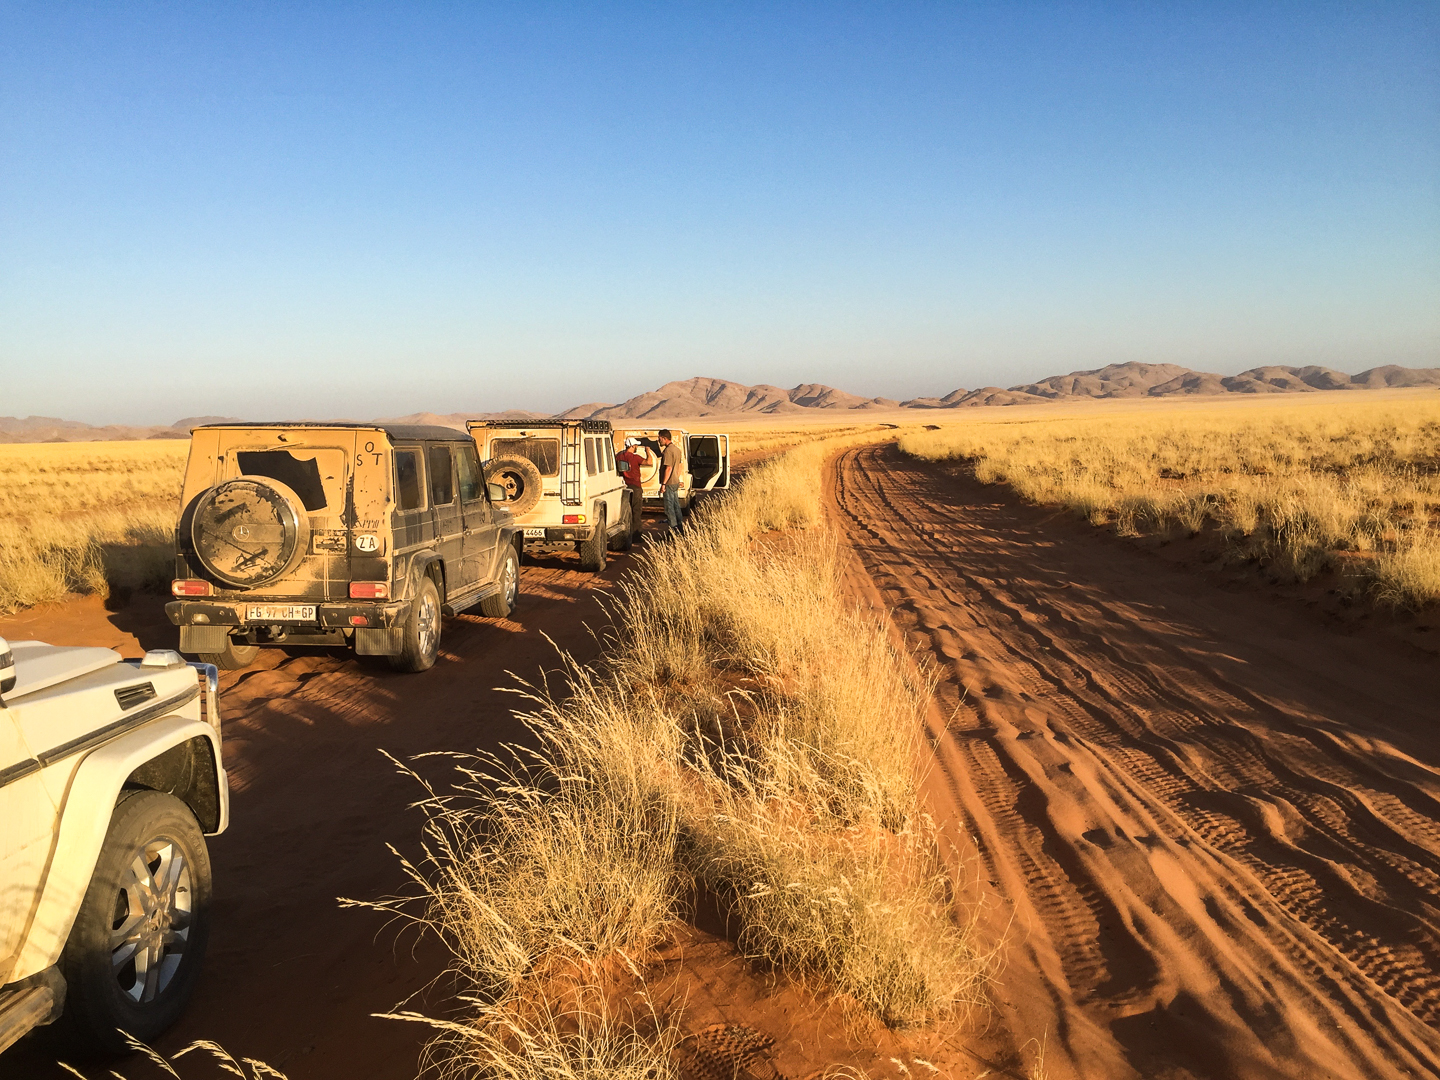 NAMIBIA, WITH HORN   A 5-DAY HI-OCTANE CHASE ACROSS SW AFRICA WITH THE WORLD'S GREATEST LIVING EXPLORER   DISCOVER